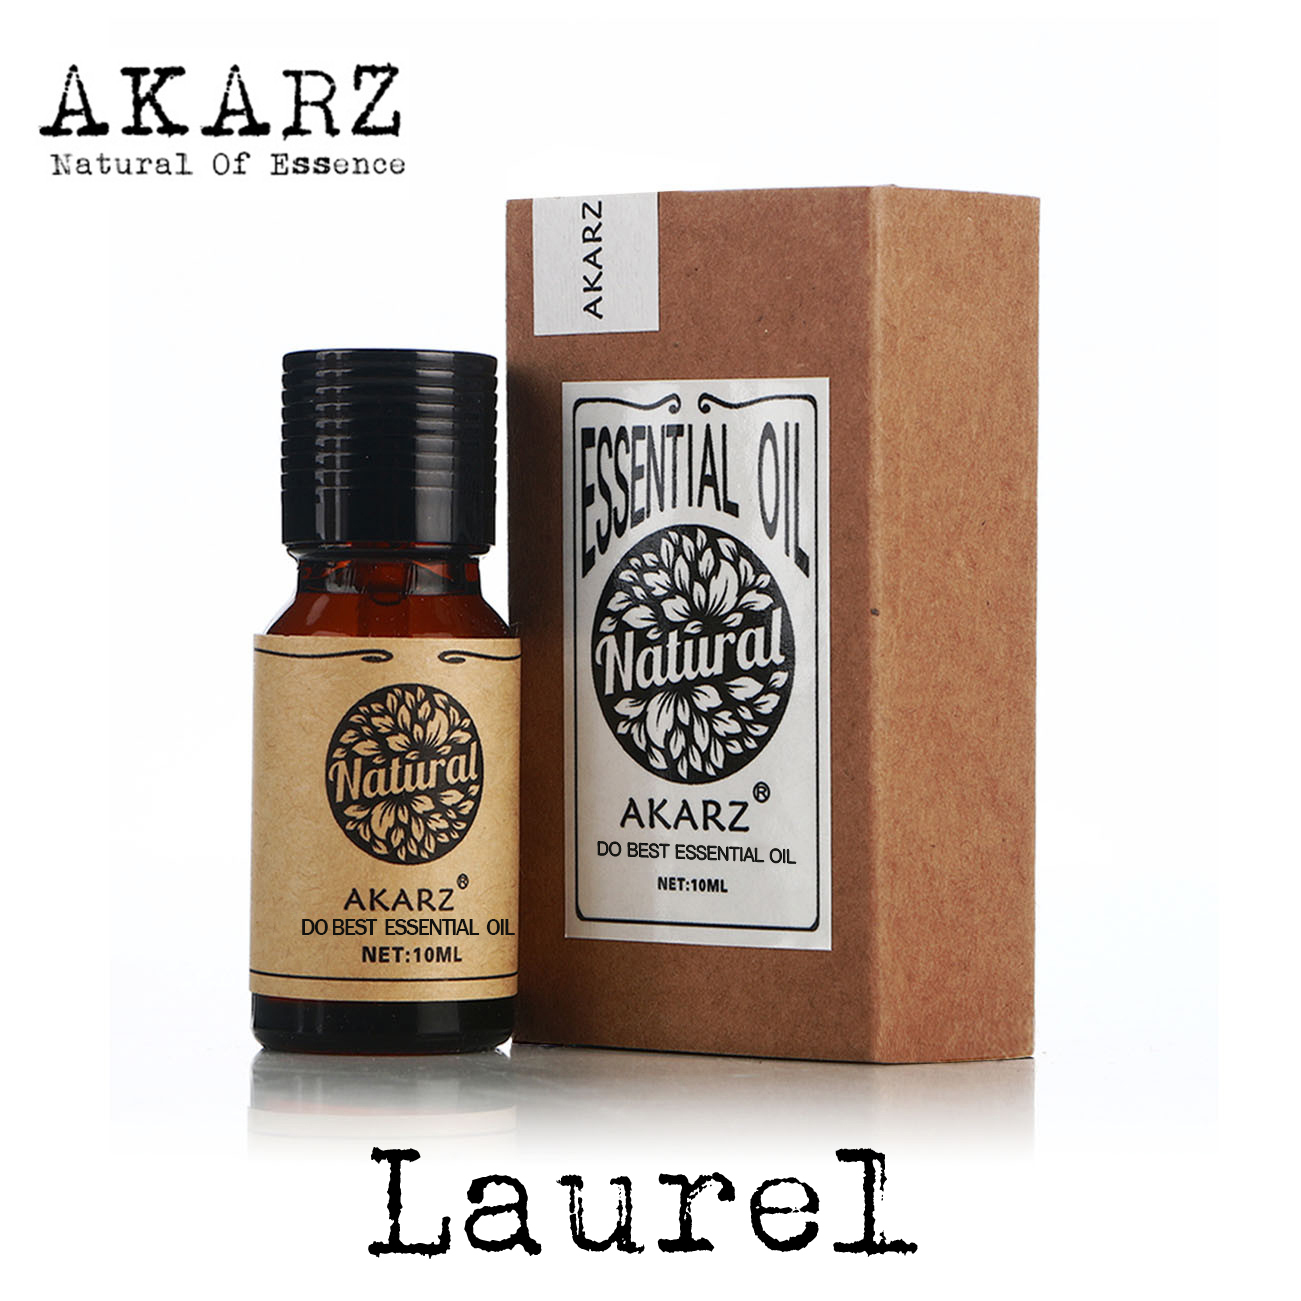 AKARZ Famous brand natural Laurel Essential Oil Acne removal Healing wound Stimulate hair growth Healing wound bay Essential oil exit wound